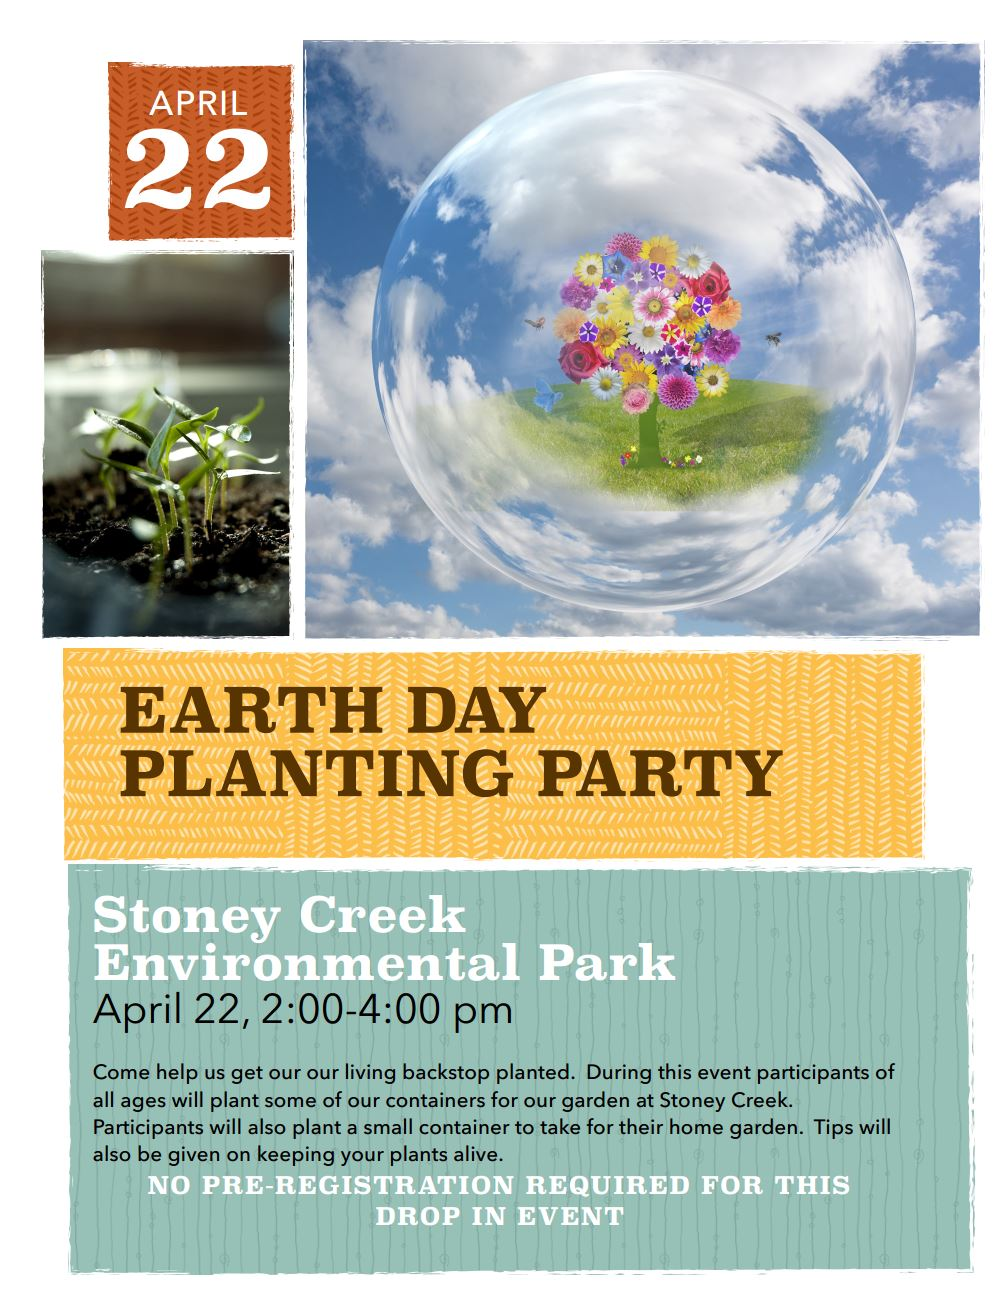 Earth Day 2019 Flyer